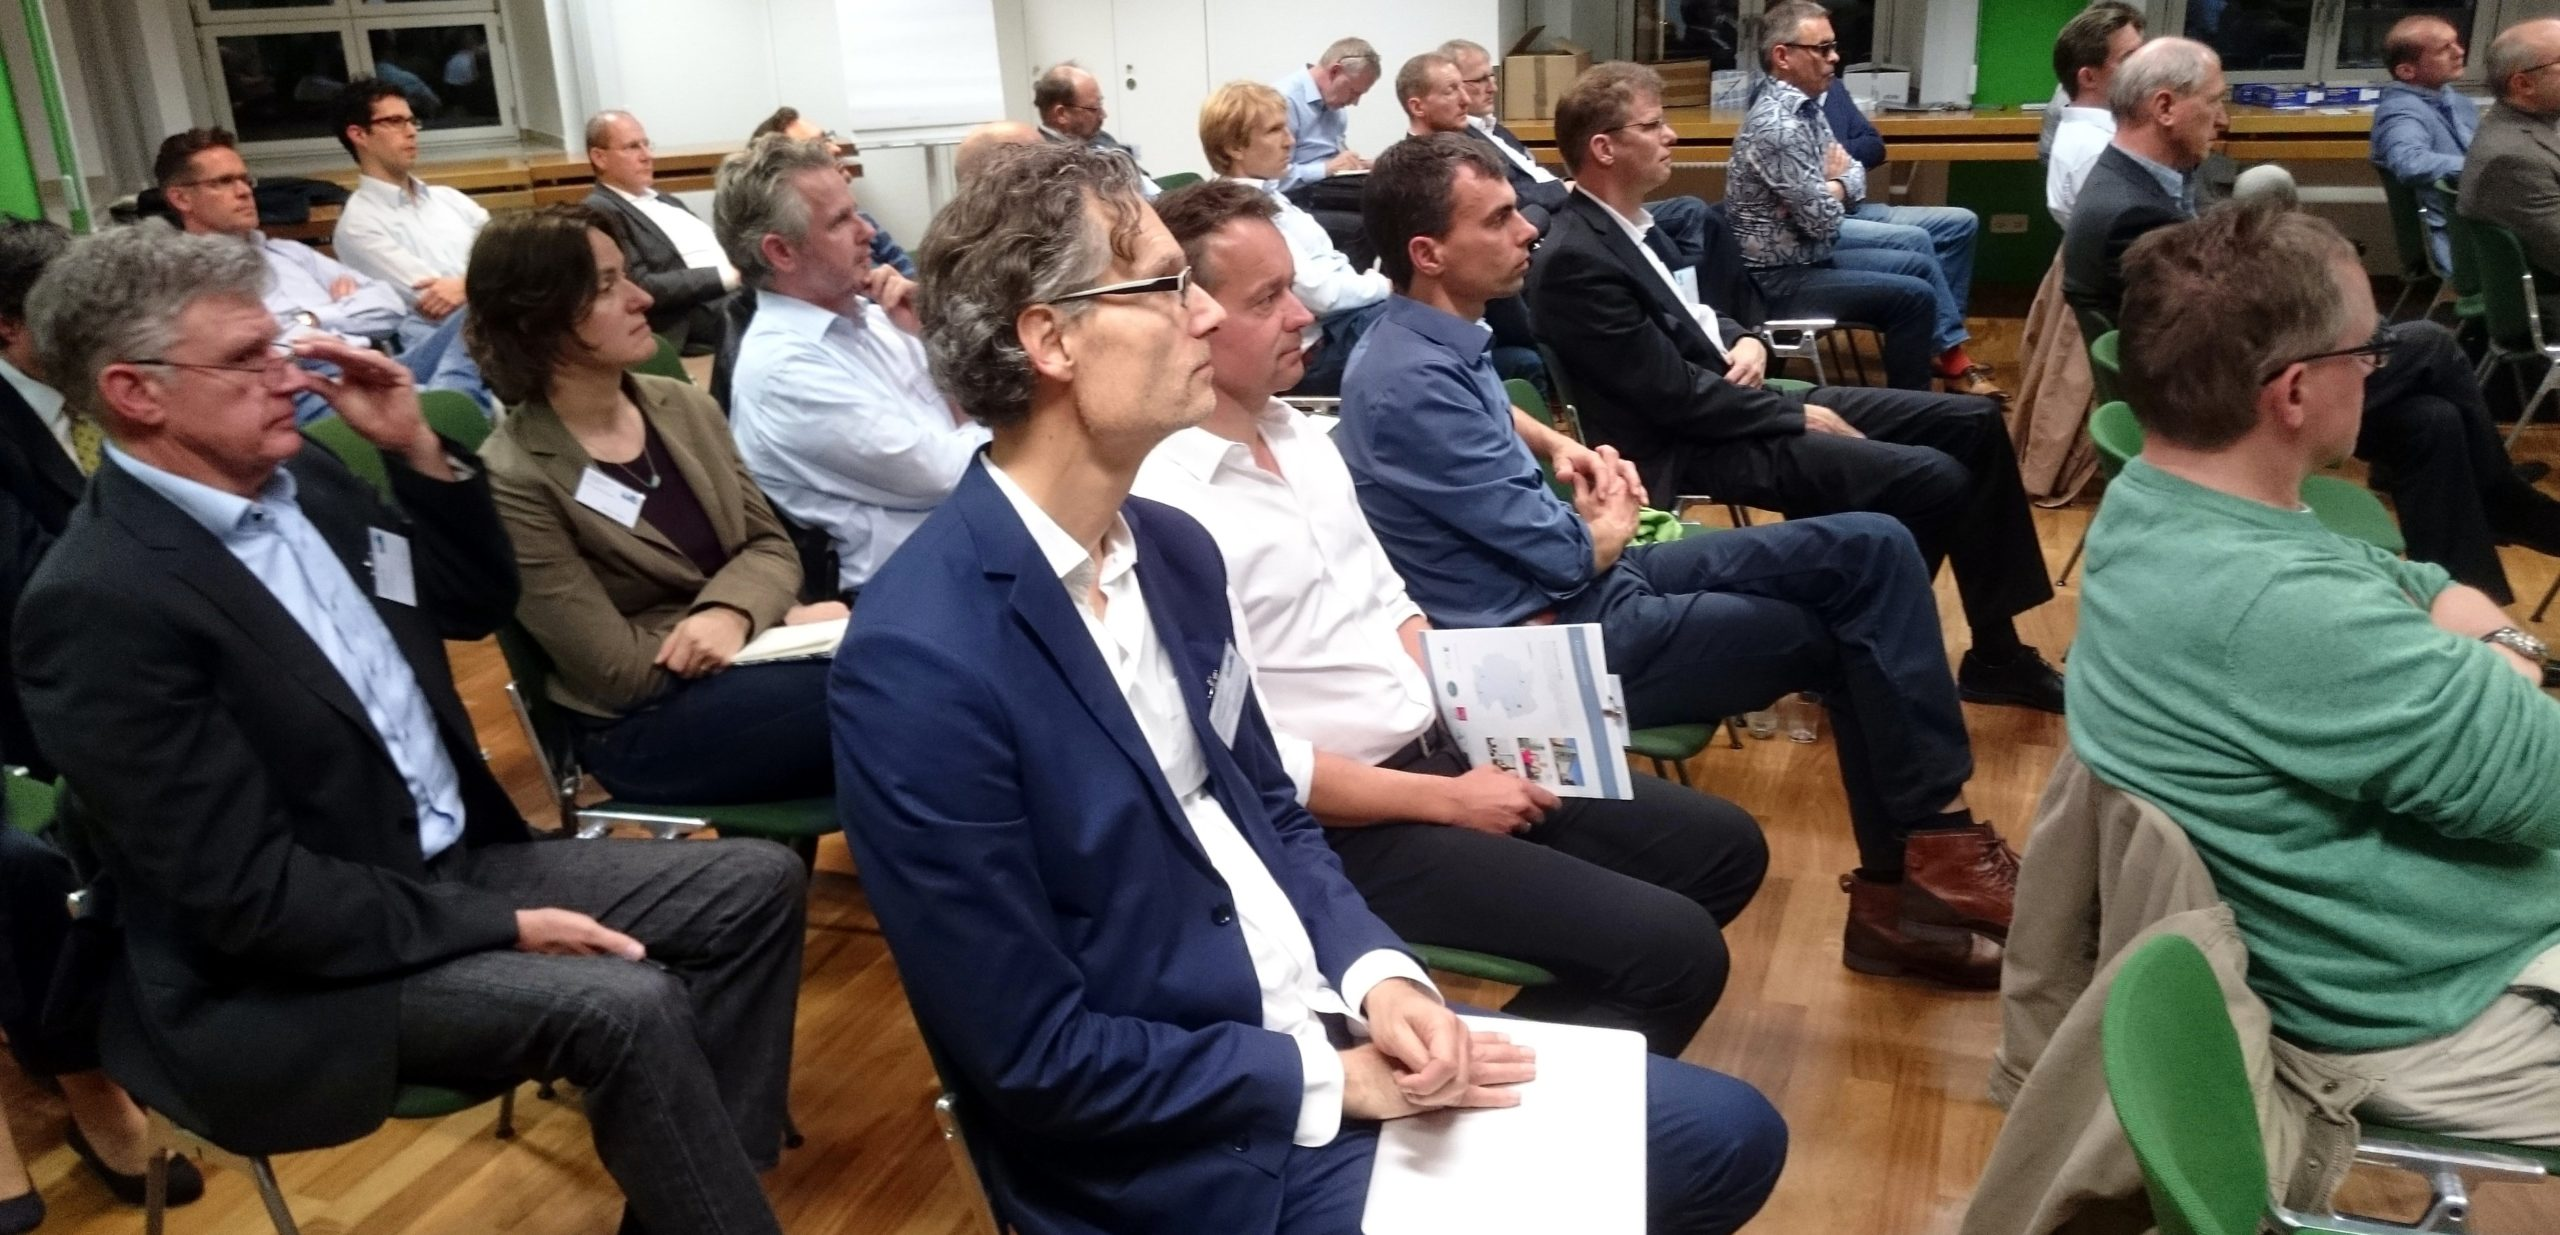 Rückblick: Chapter-Meeting am 20.10.2017 in Essen